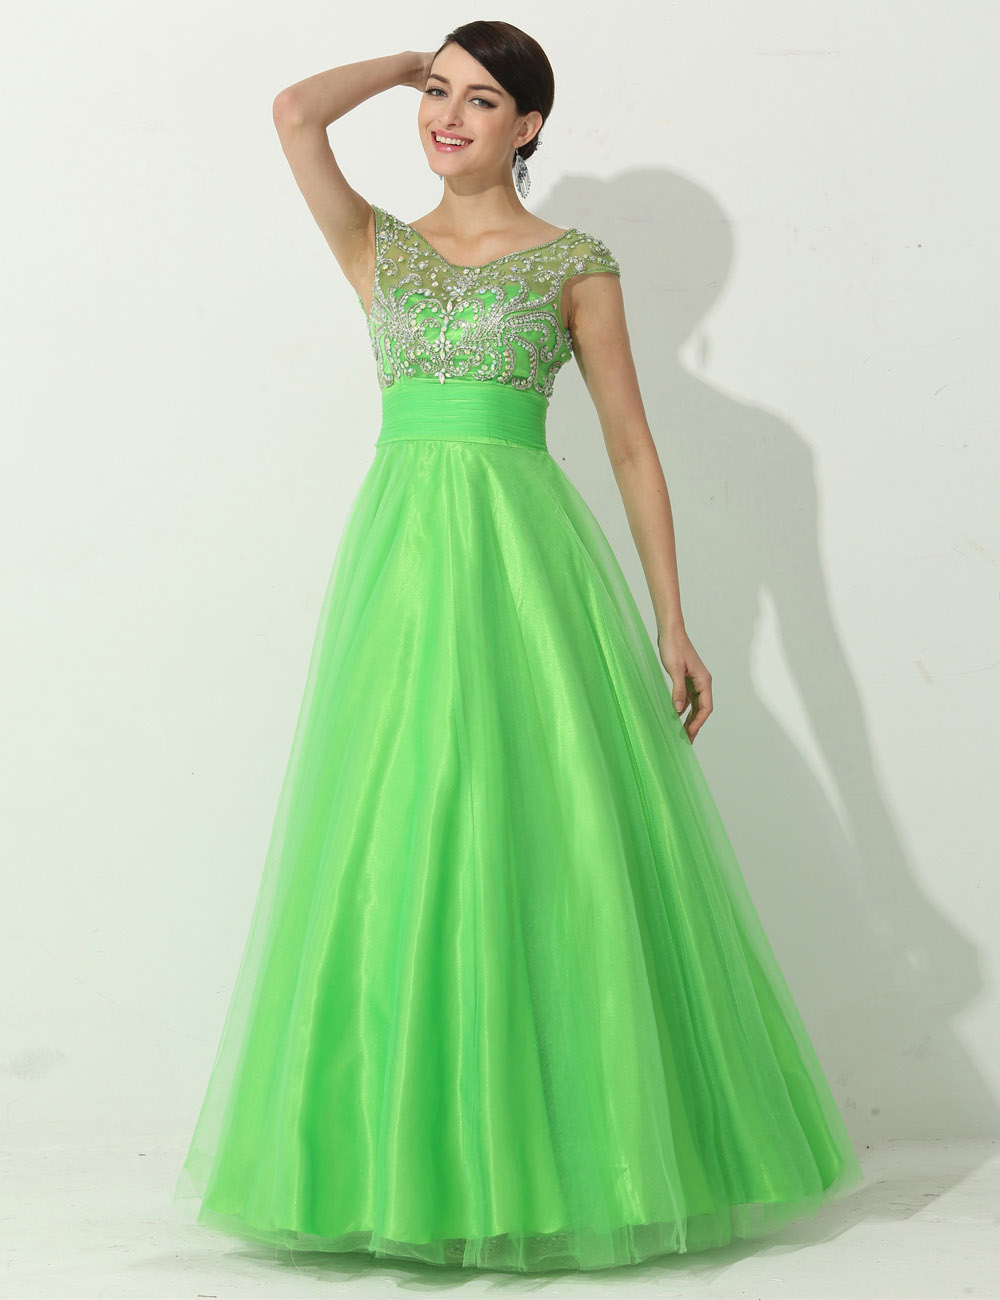 Sheath/Column One Shoulder Floor-length Sequins Prom Dress